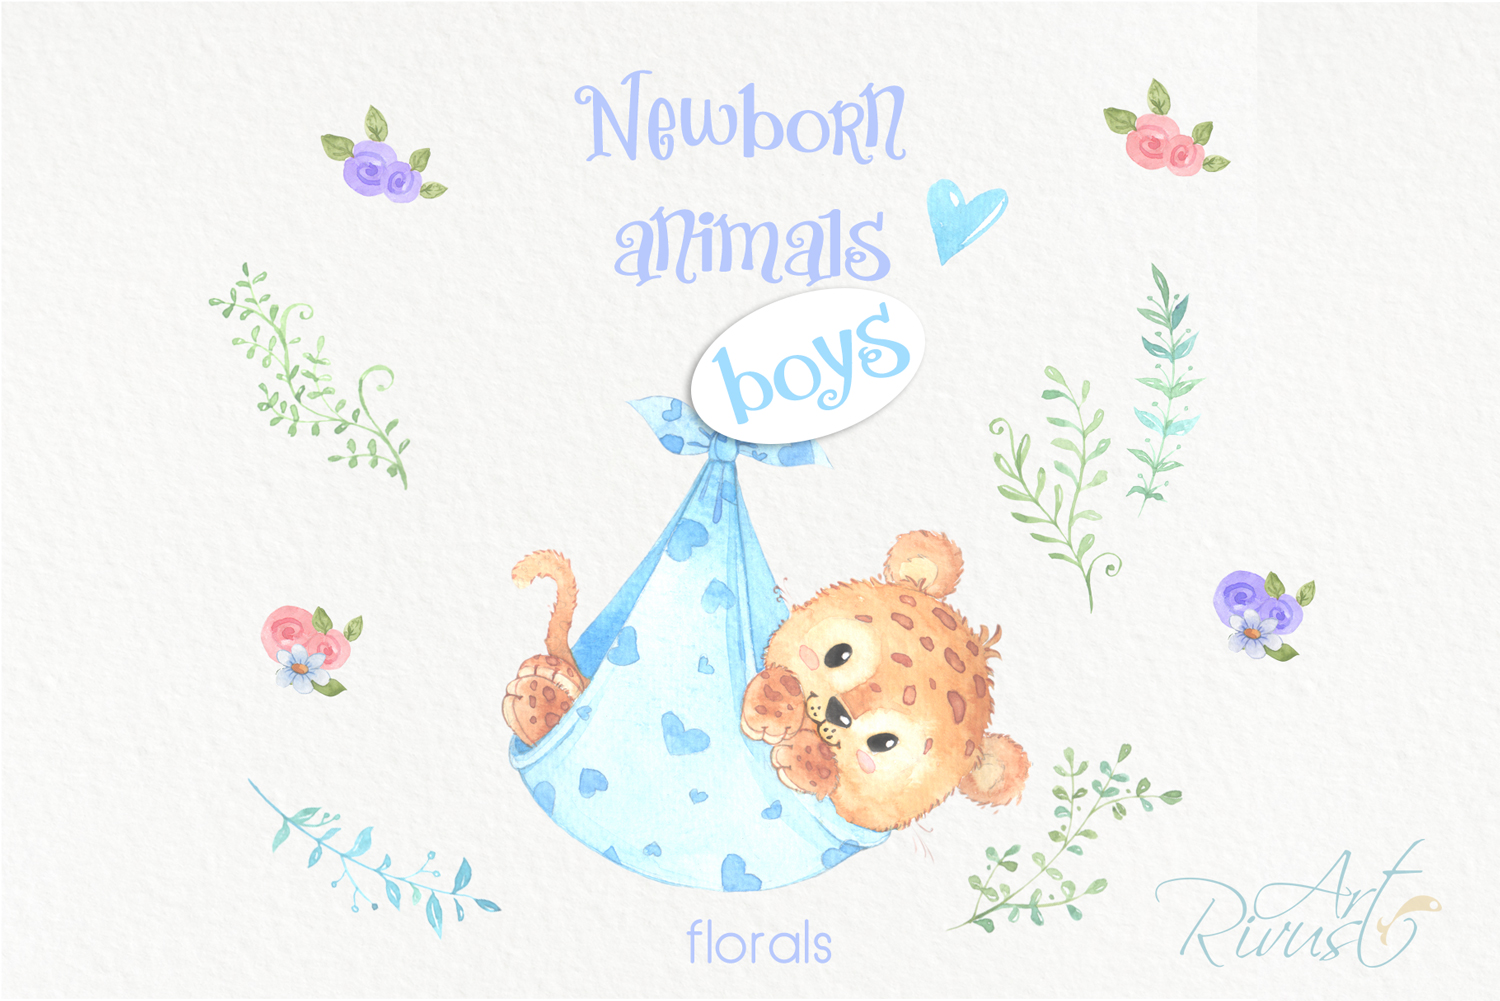 It's a boy Newborn animals clipart PNG download. African Saf example image 6